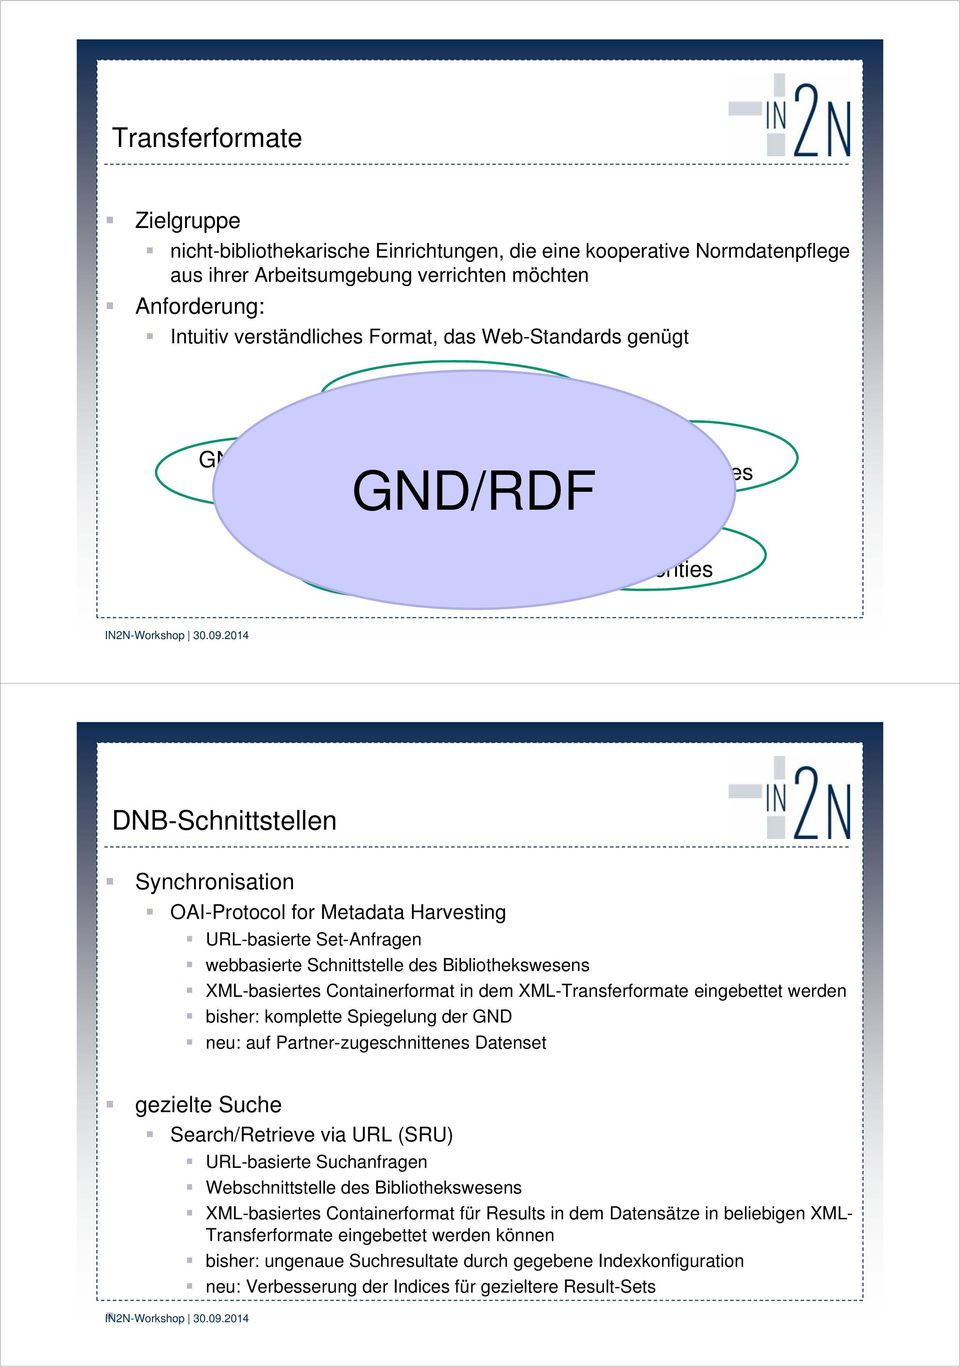 /RDF RDA Vocabularies BIBFRAME for Authorities DNB-Schnittstellen Synchronisation -Protocol for Metadata Harvesting URL-basierte Set-Anfragen webbasierte Schnittstelle des Bibliothekswesens